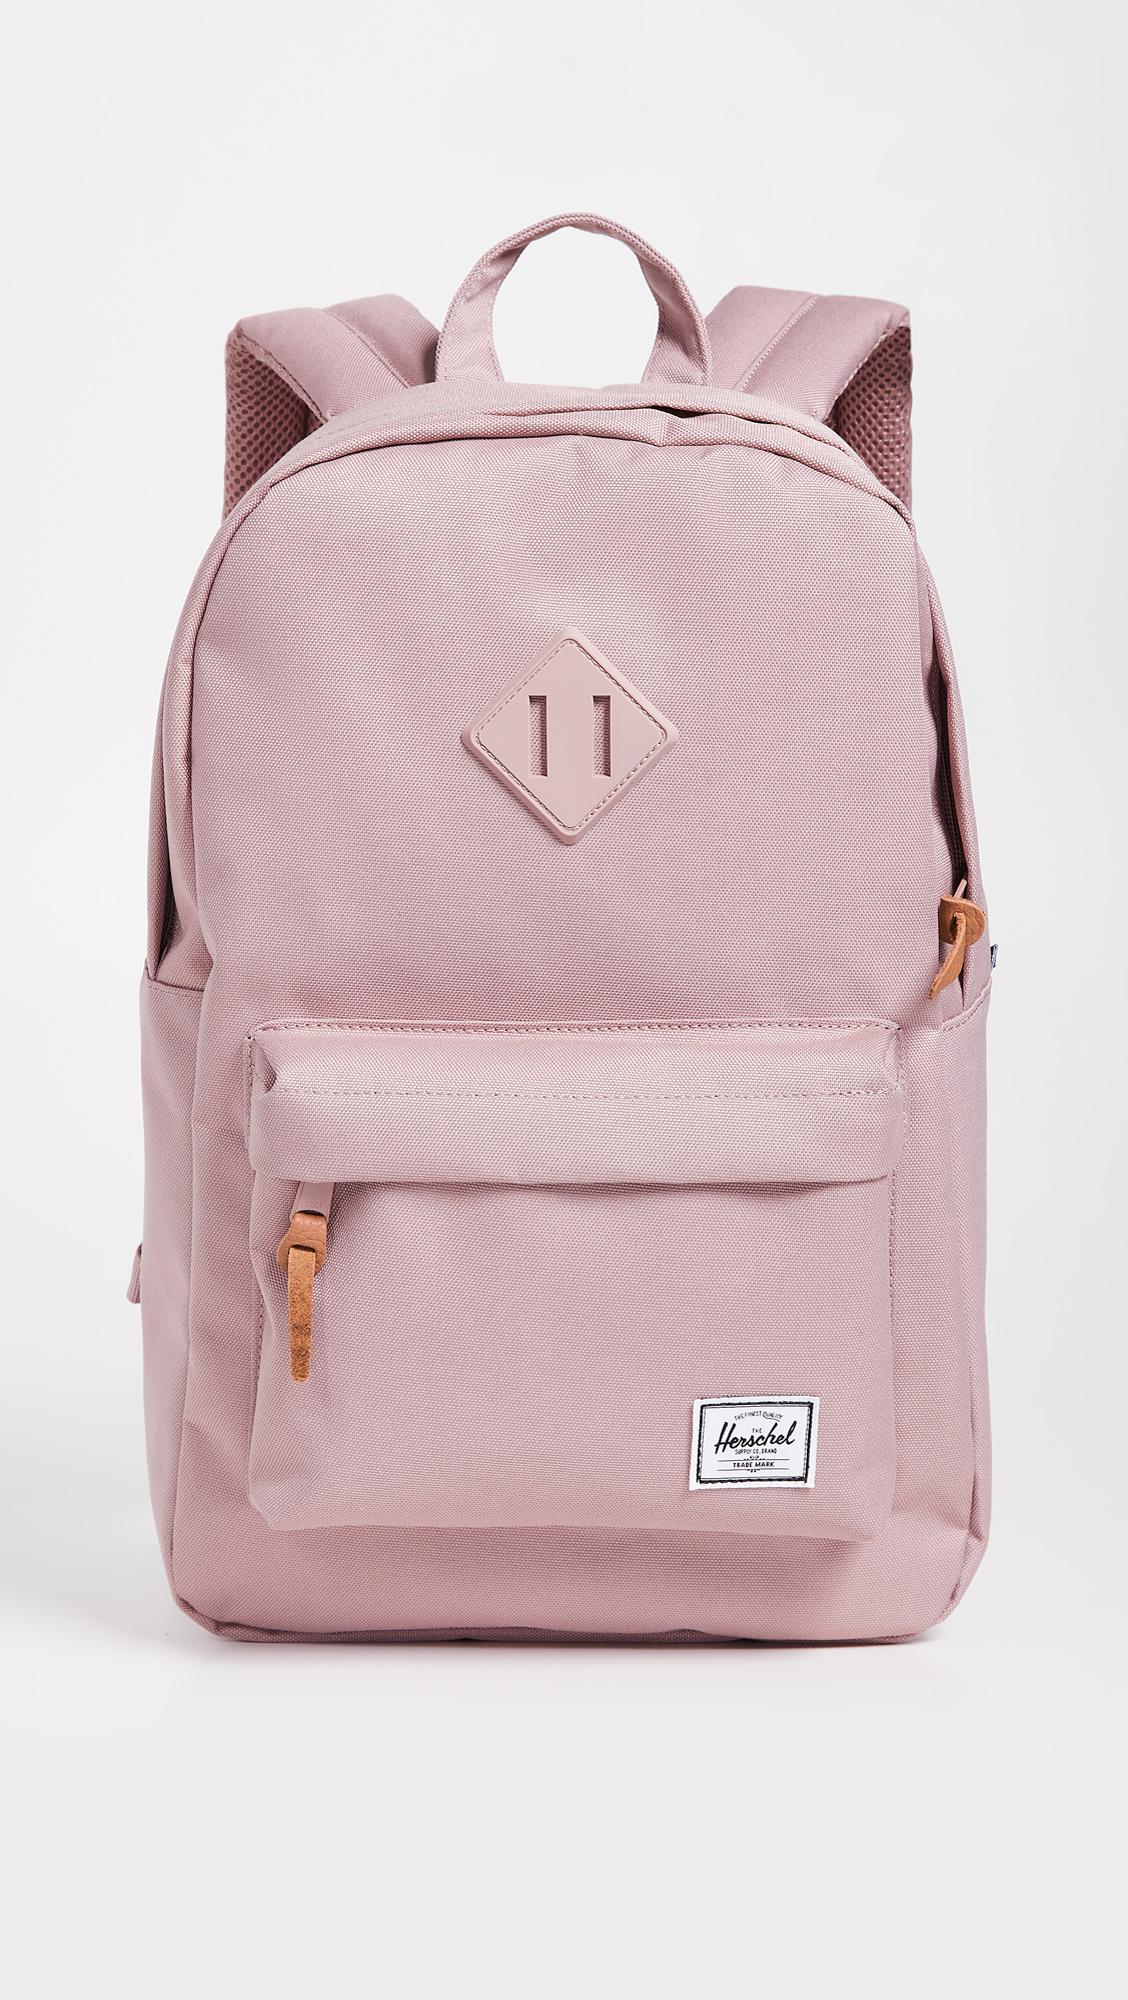 671e65fc4e40 Lyst - Herschel Supply Co. Heritage Mid Volume Backpack in Pink